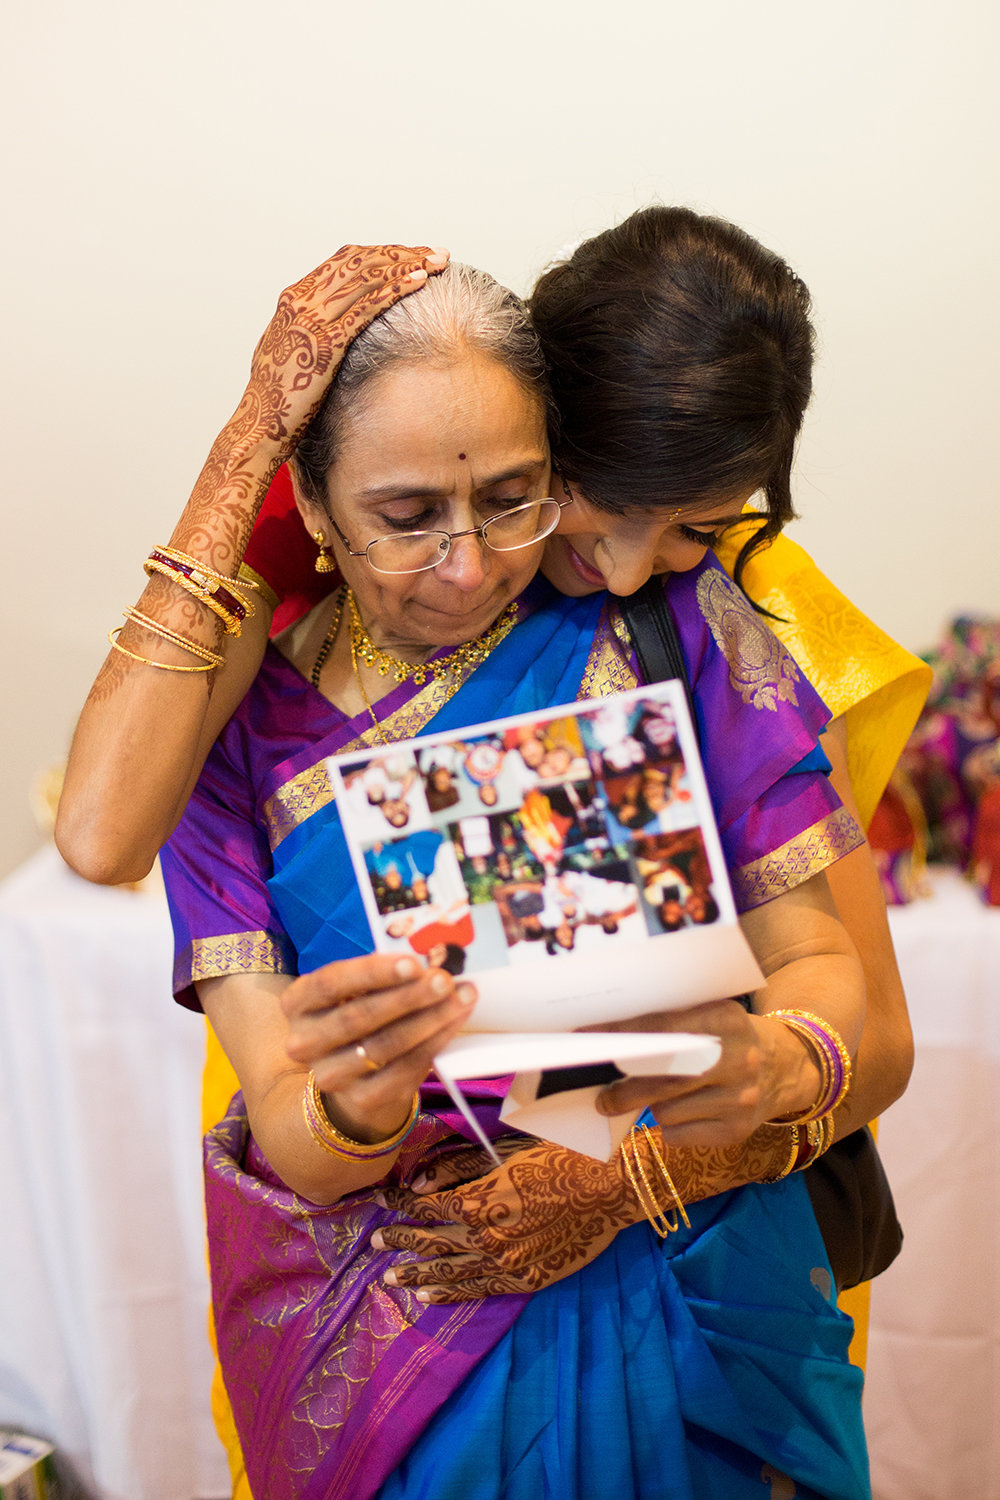 Sweet Moment Between and Indian Bride and Her Mother